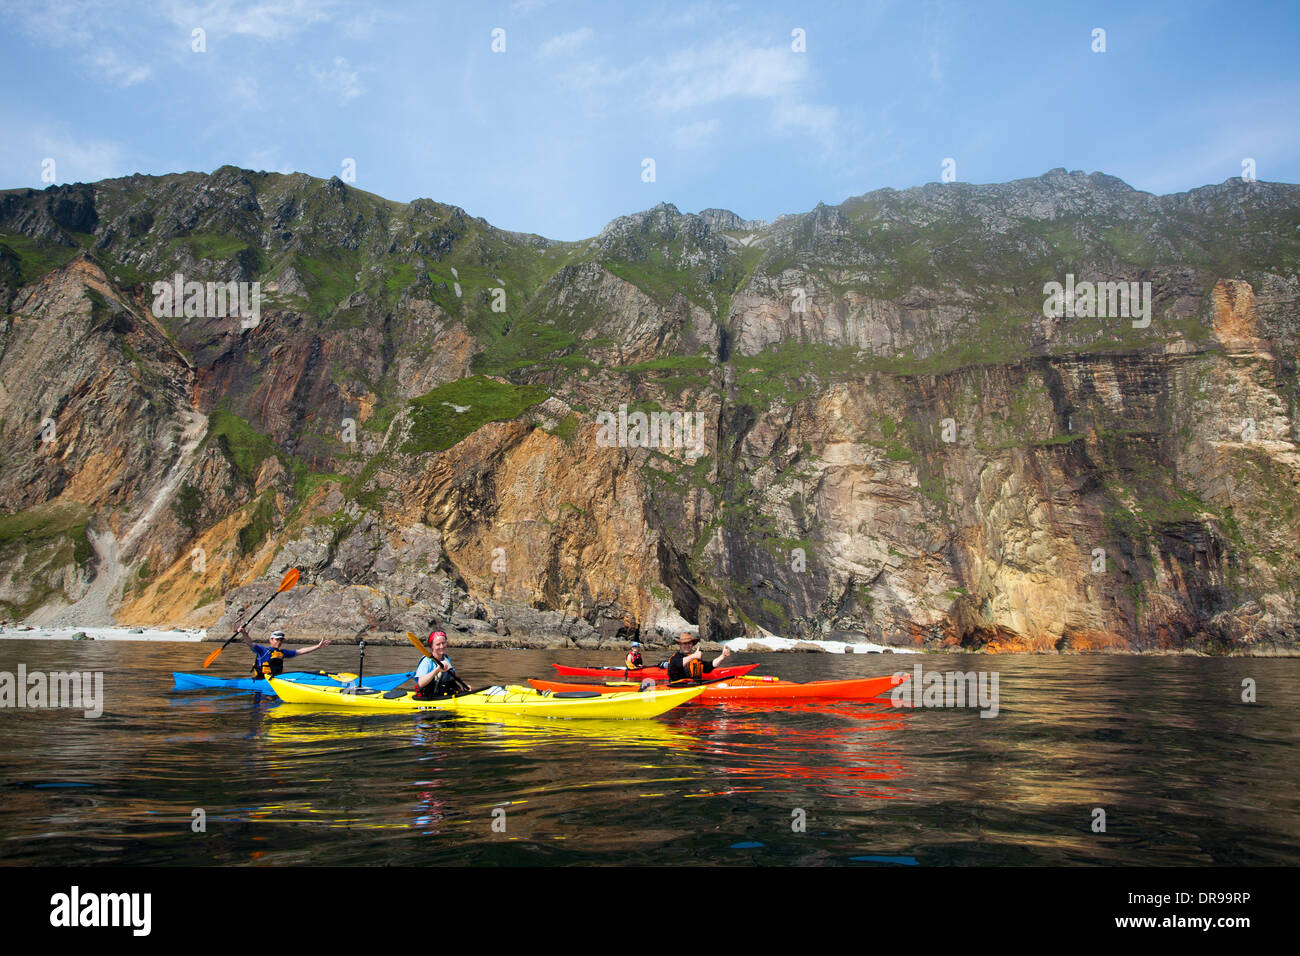 Sea kayaking beneath the Slieve League cliffs, County Donegal, Ireland. - Stock Image